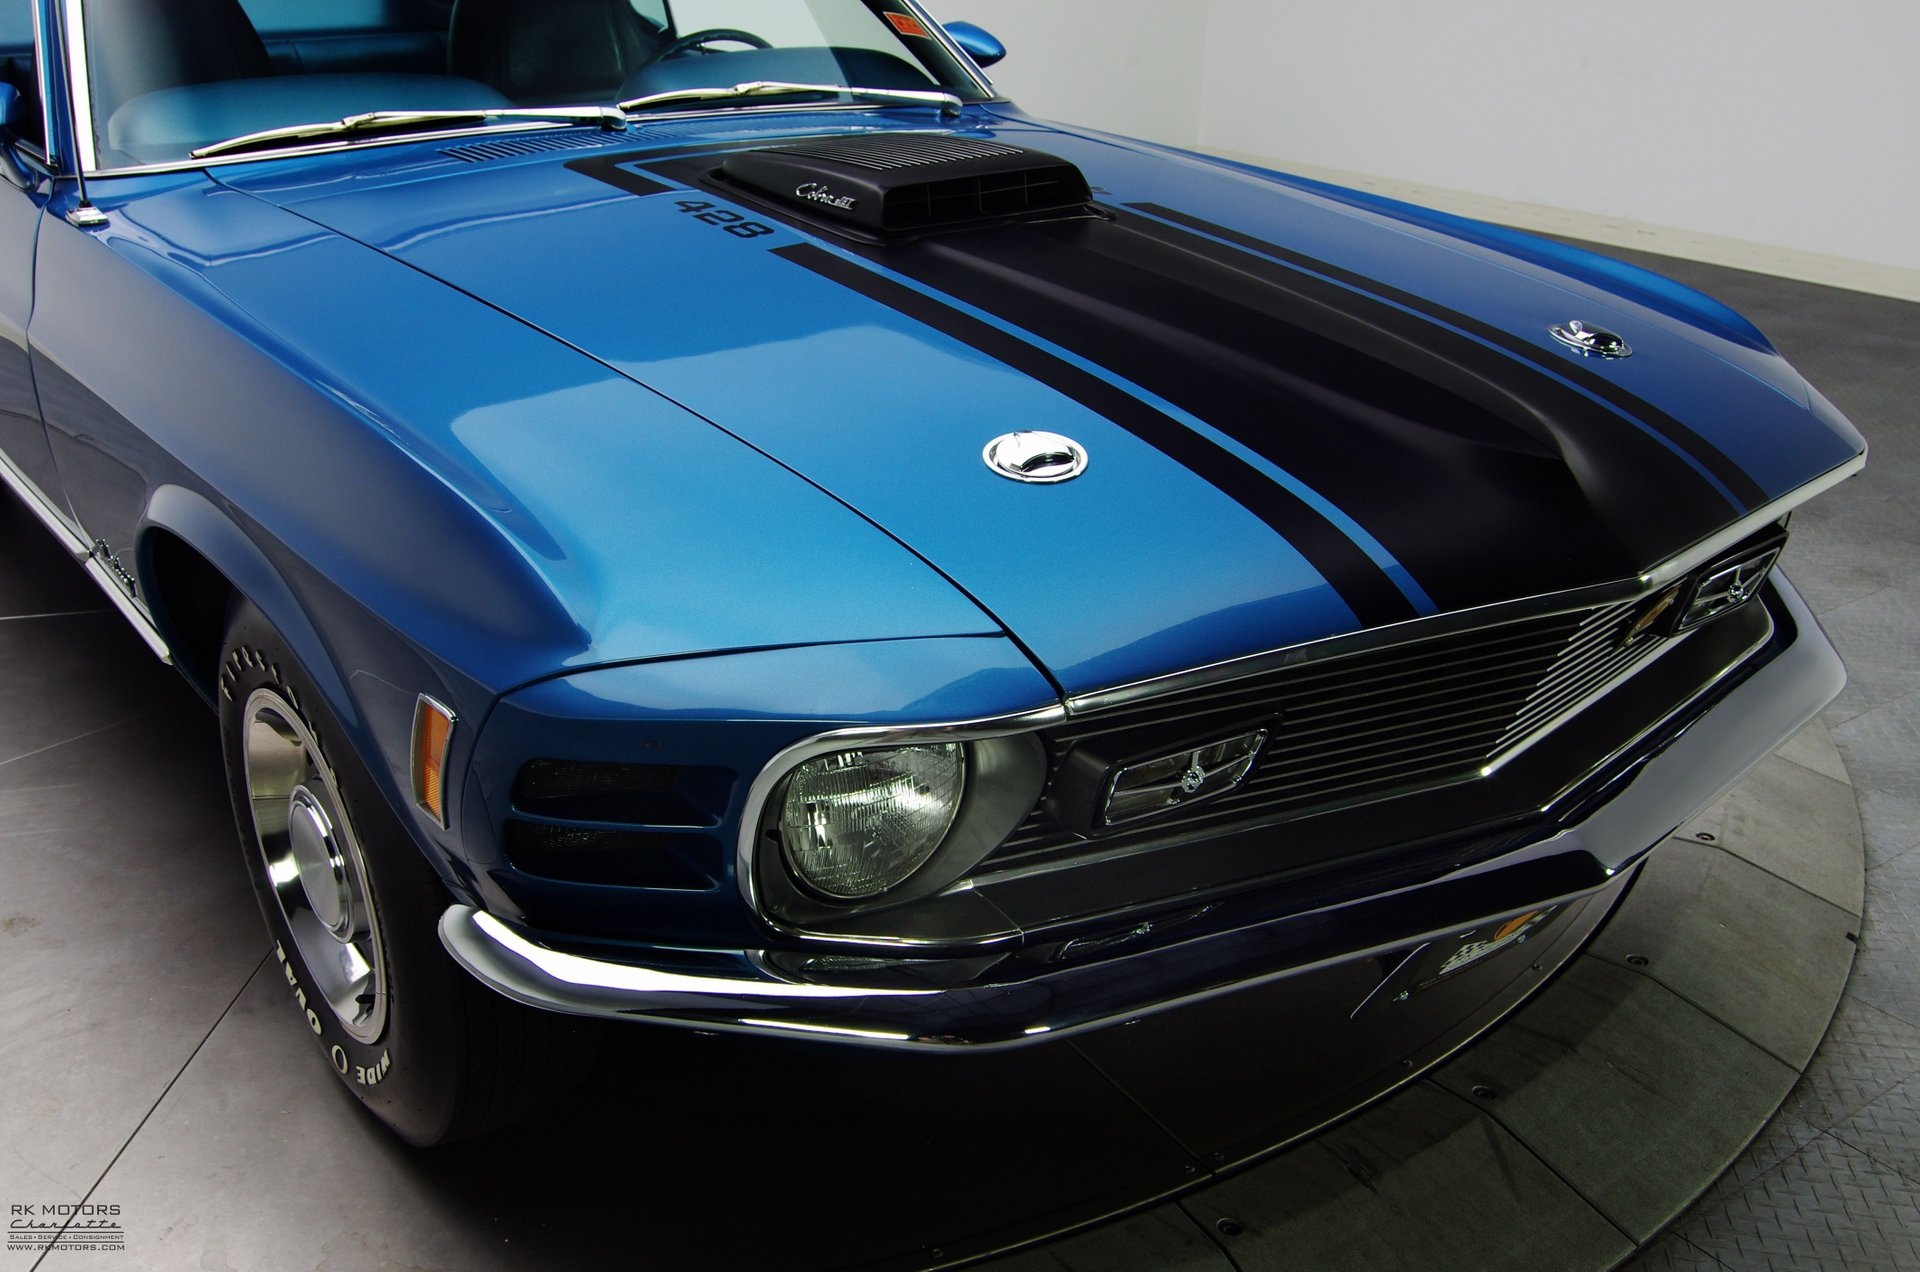 134073 1970 Ford Mustang RK Motors Classic Cars for Sale